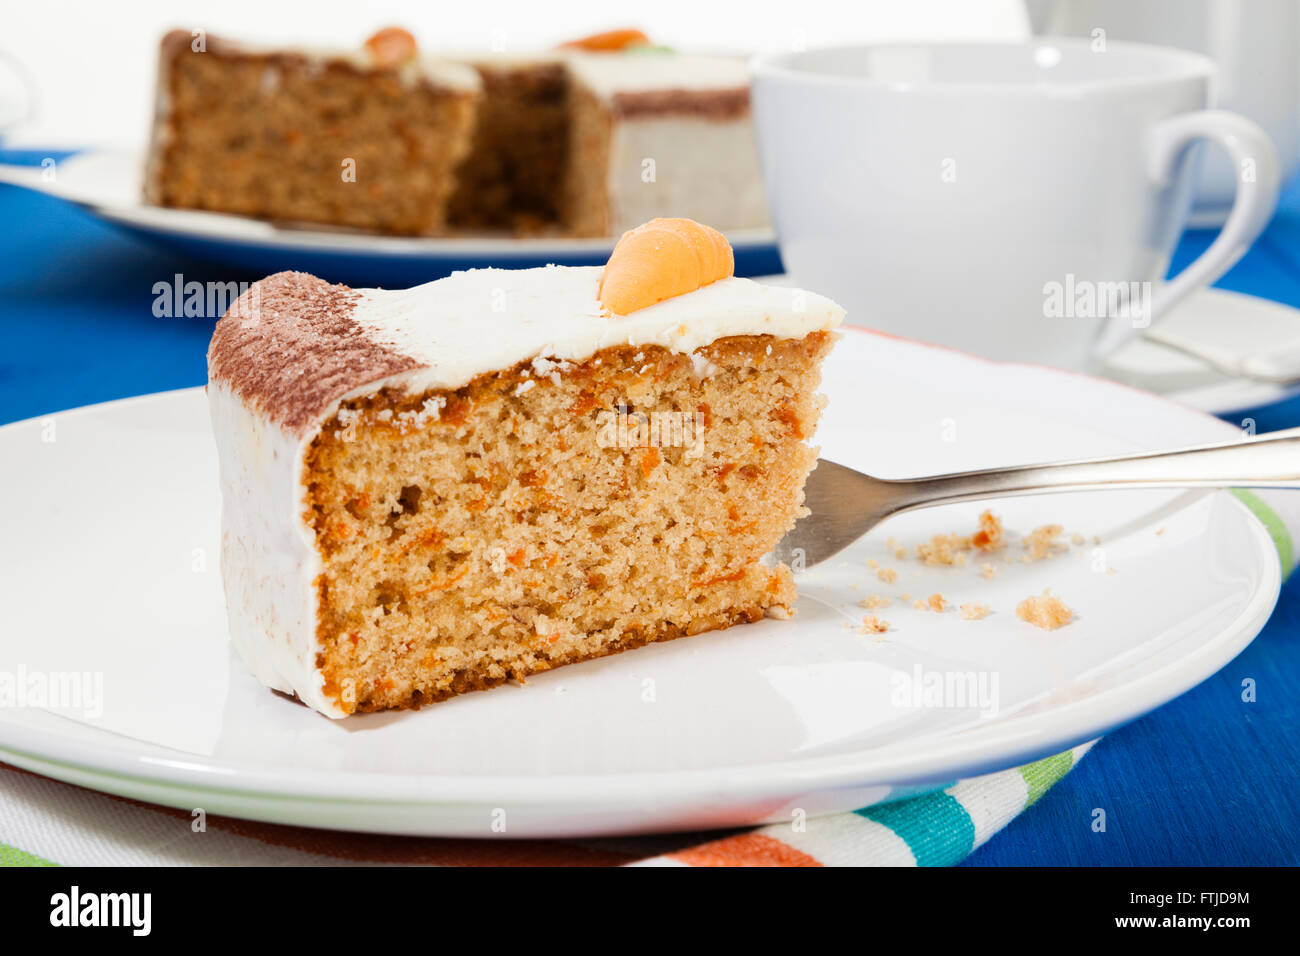 Piece of Carrot cake on a plate, on coffee table - Stock Image